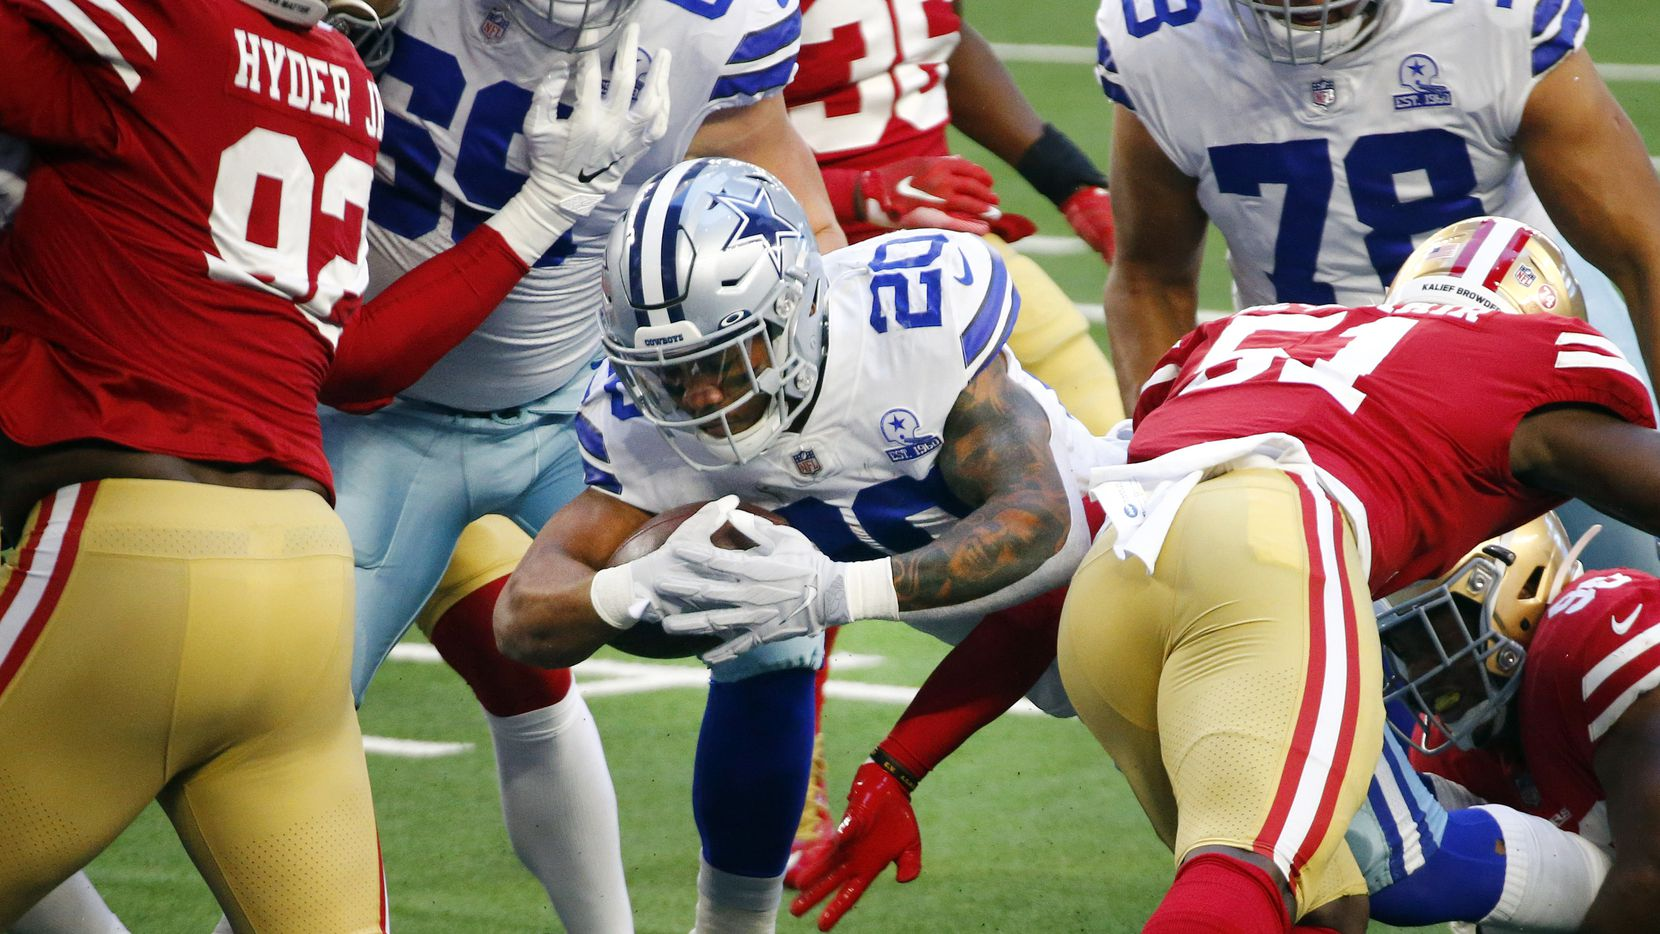 Dallas Cowboys running back Tony Pollard (20) scores a first quarter touchdown against the San Francisco 49ers during the first quarter at AT&T Stadium in Arlington, Texas, Sunday, December 20, 2020.